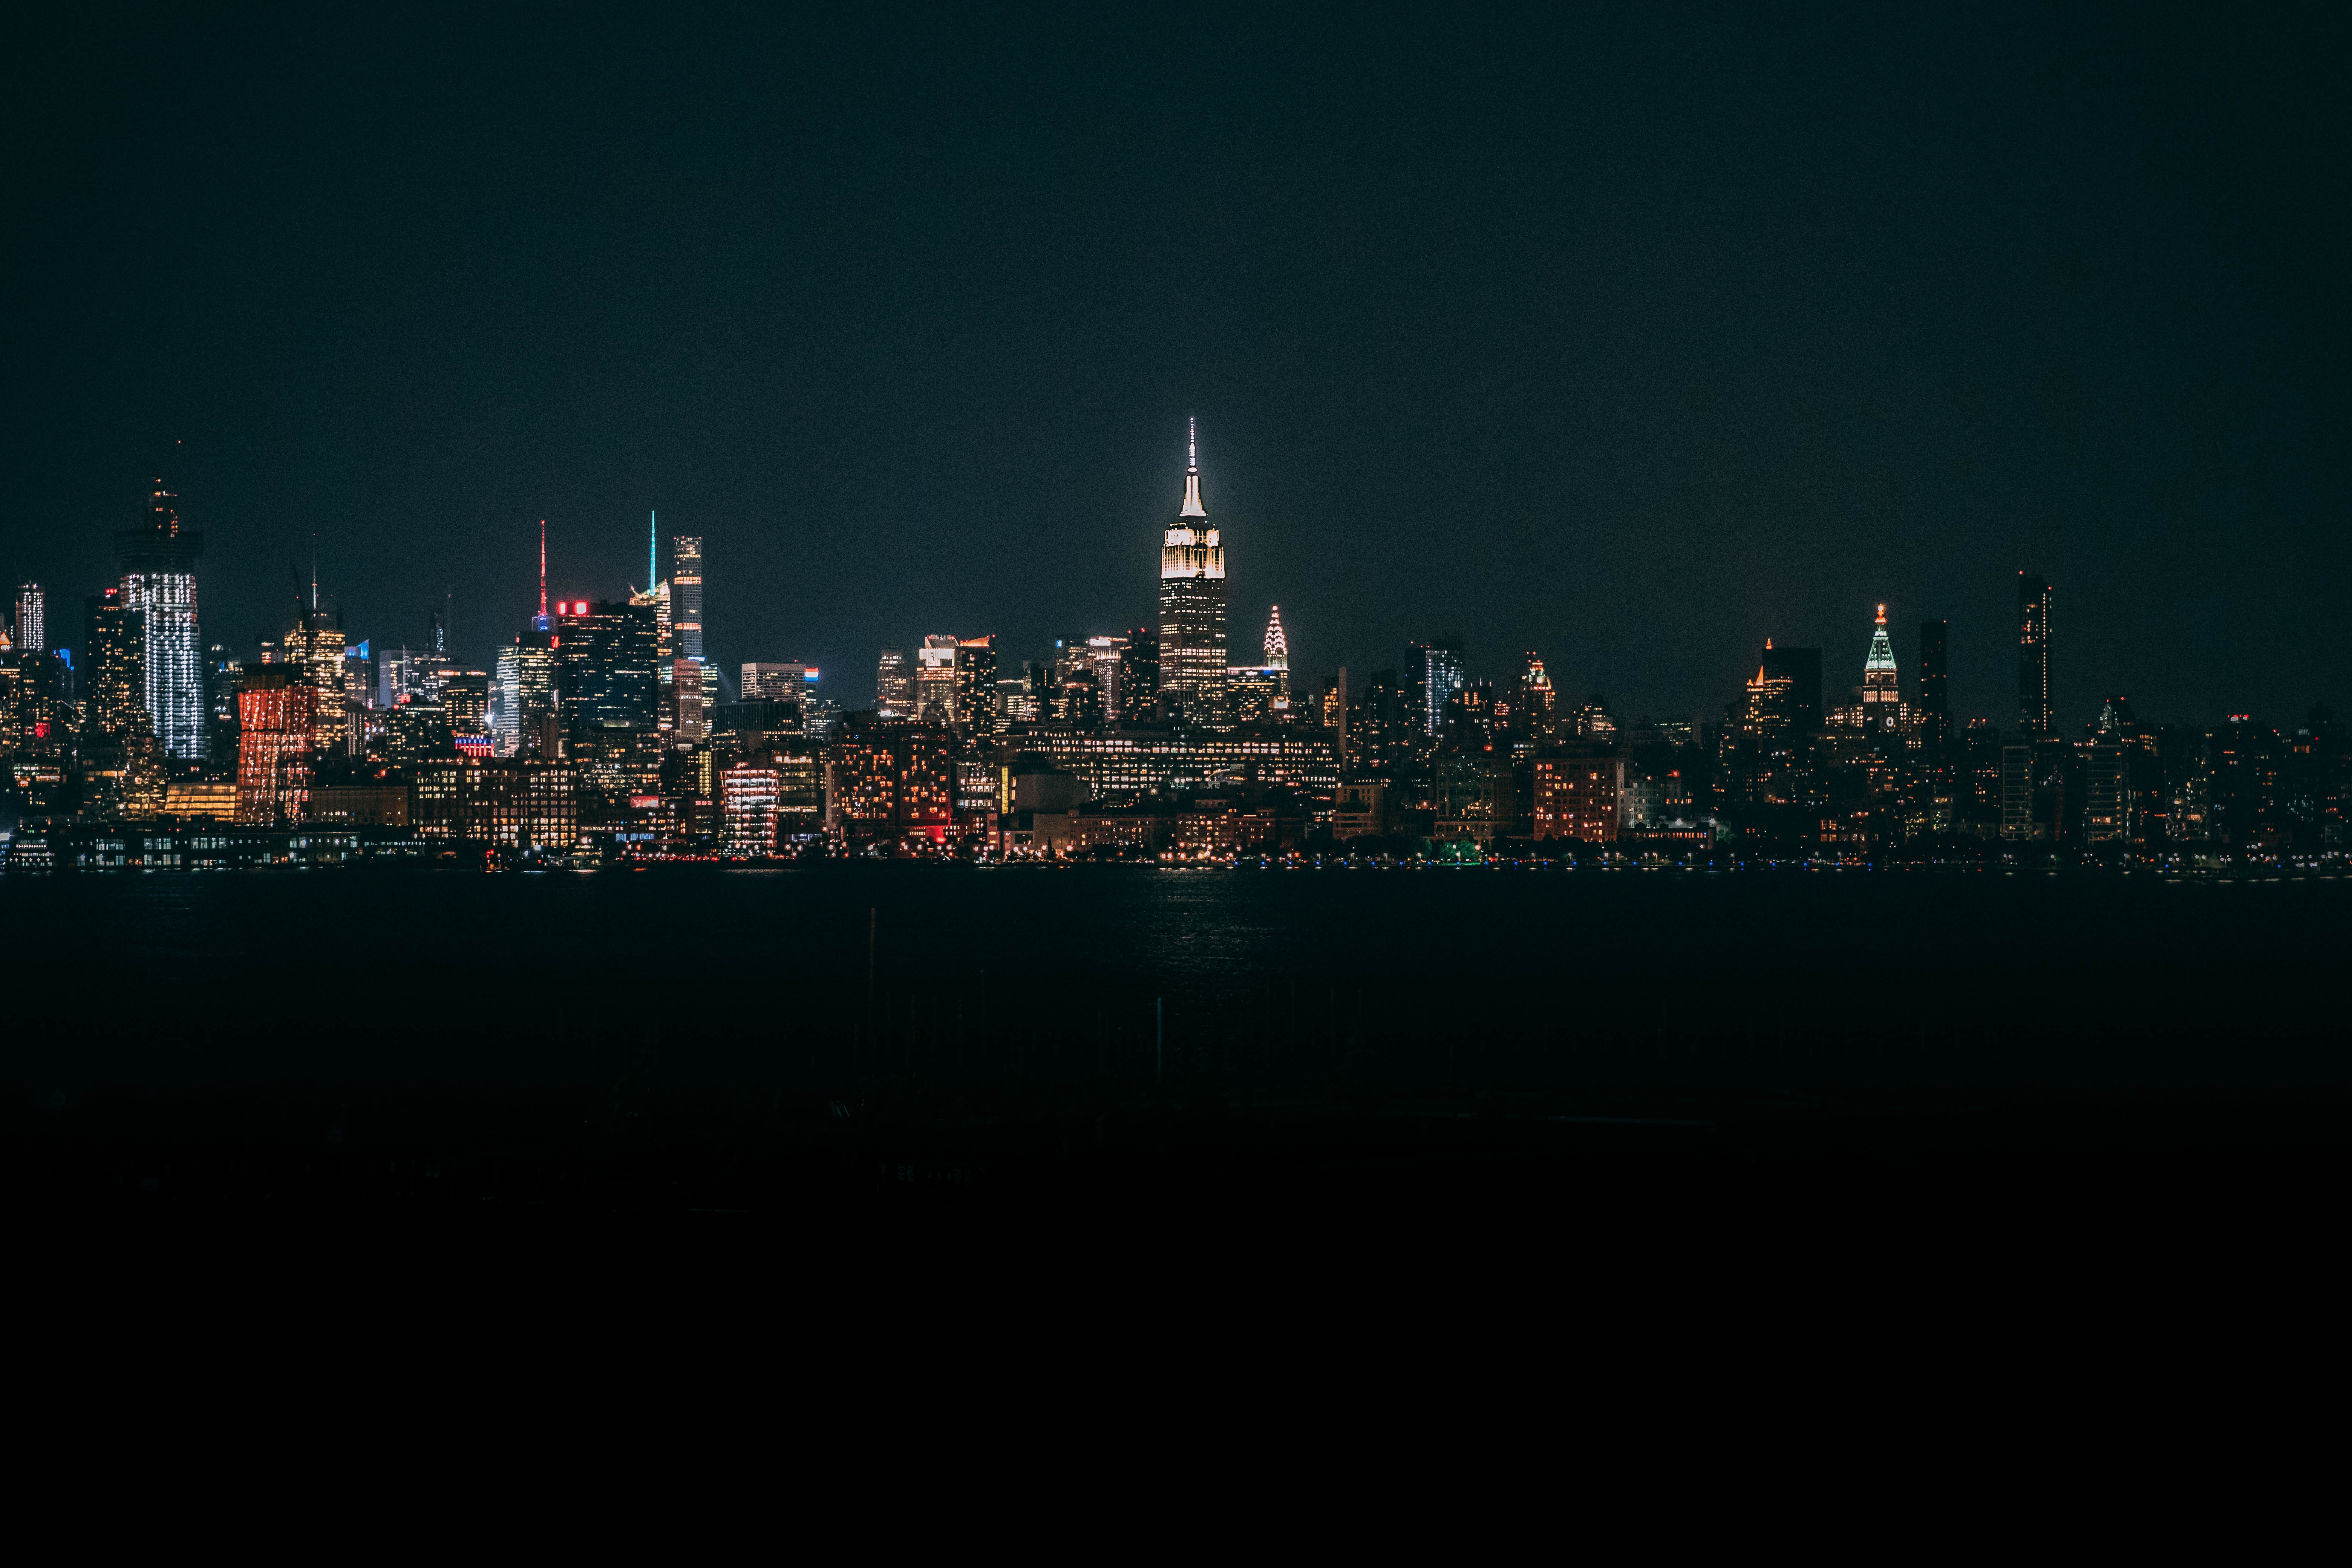 cityscape near bodies of water at night time